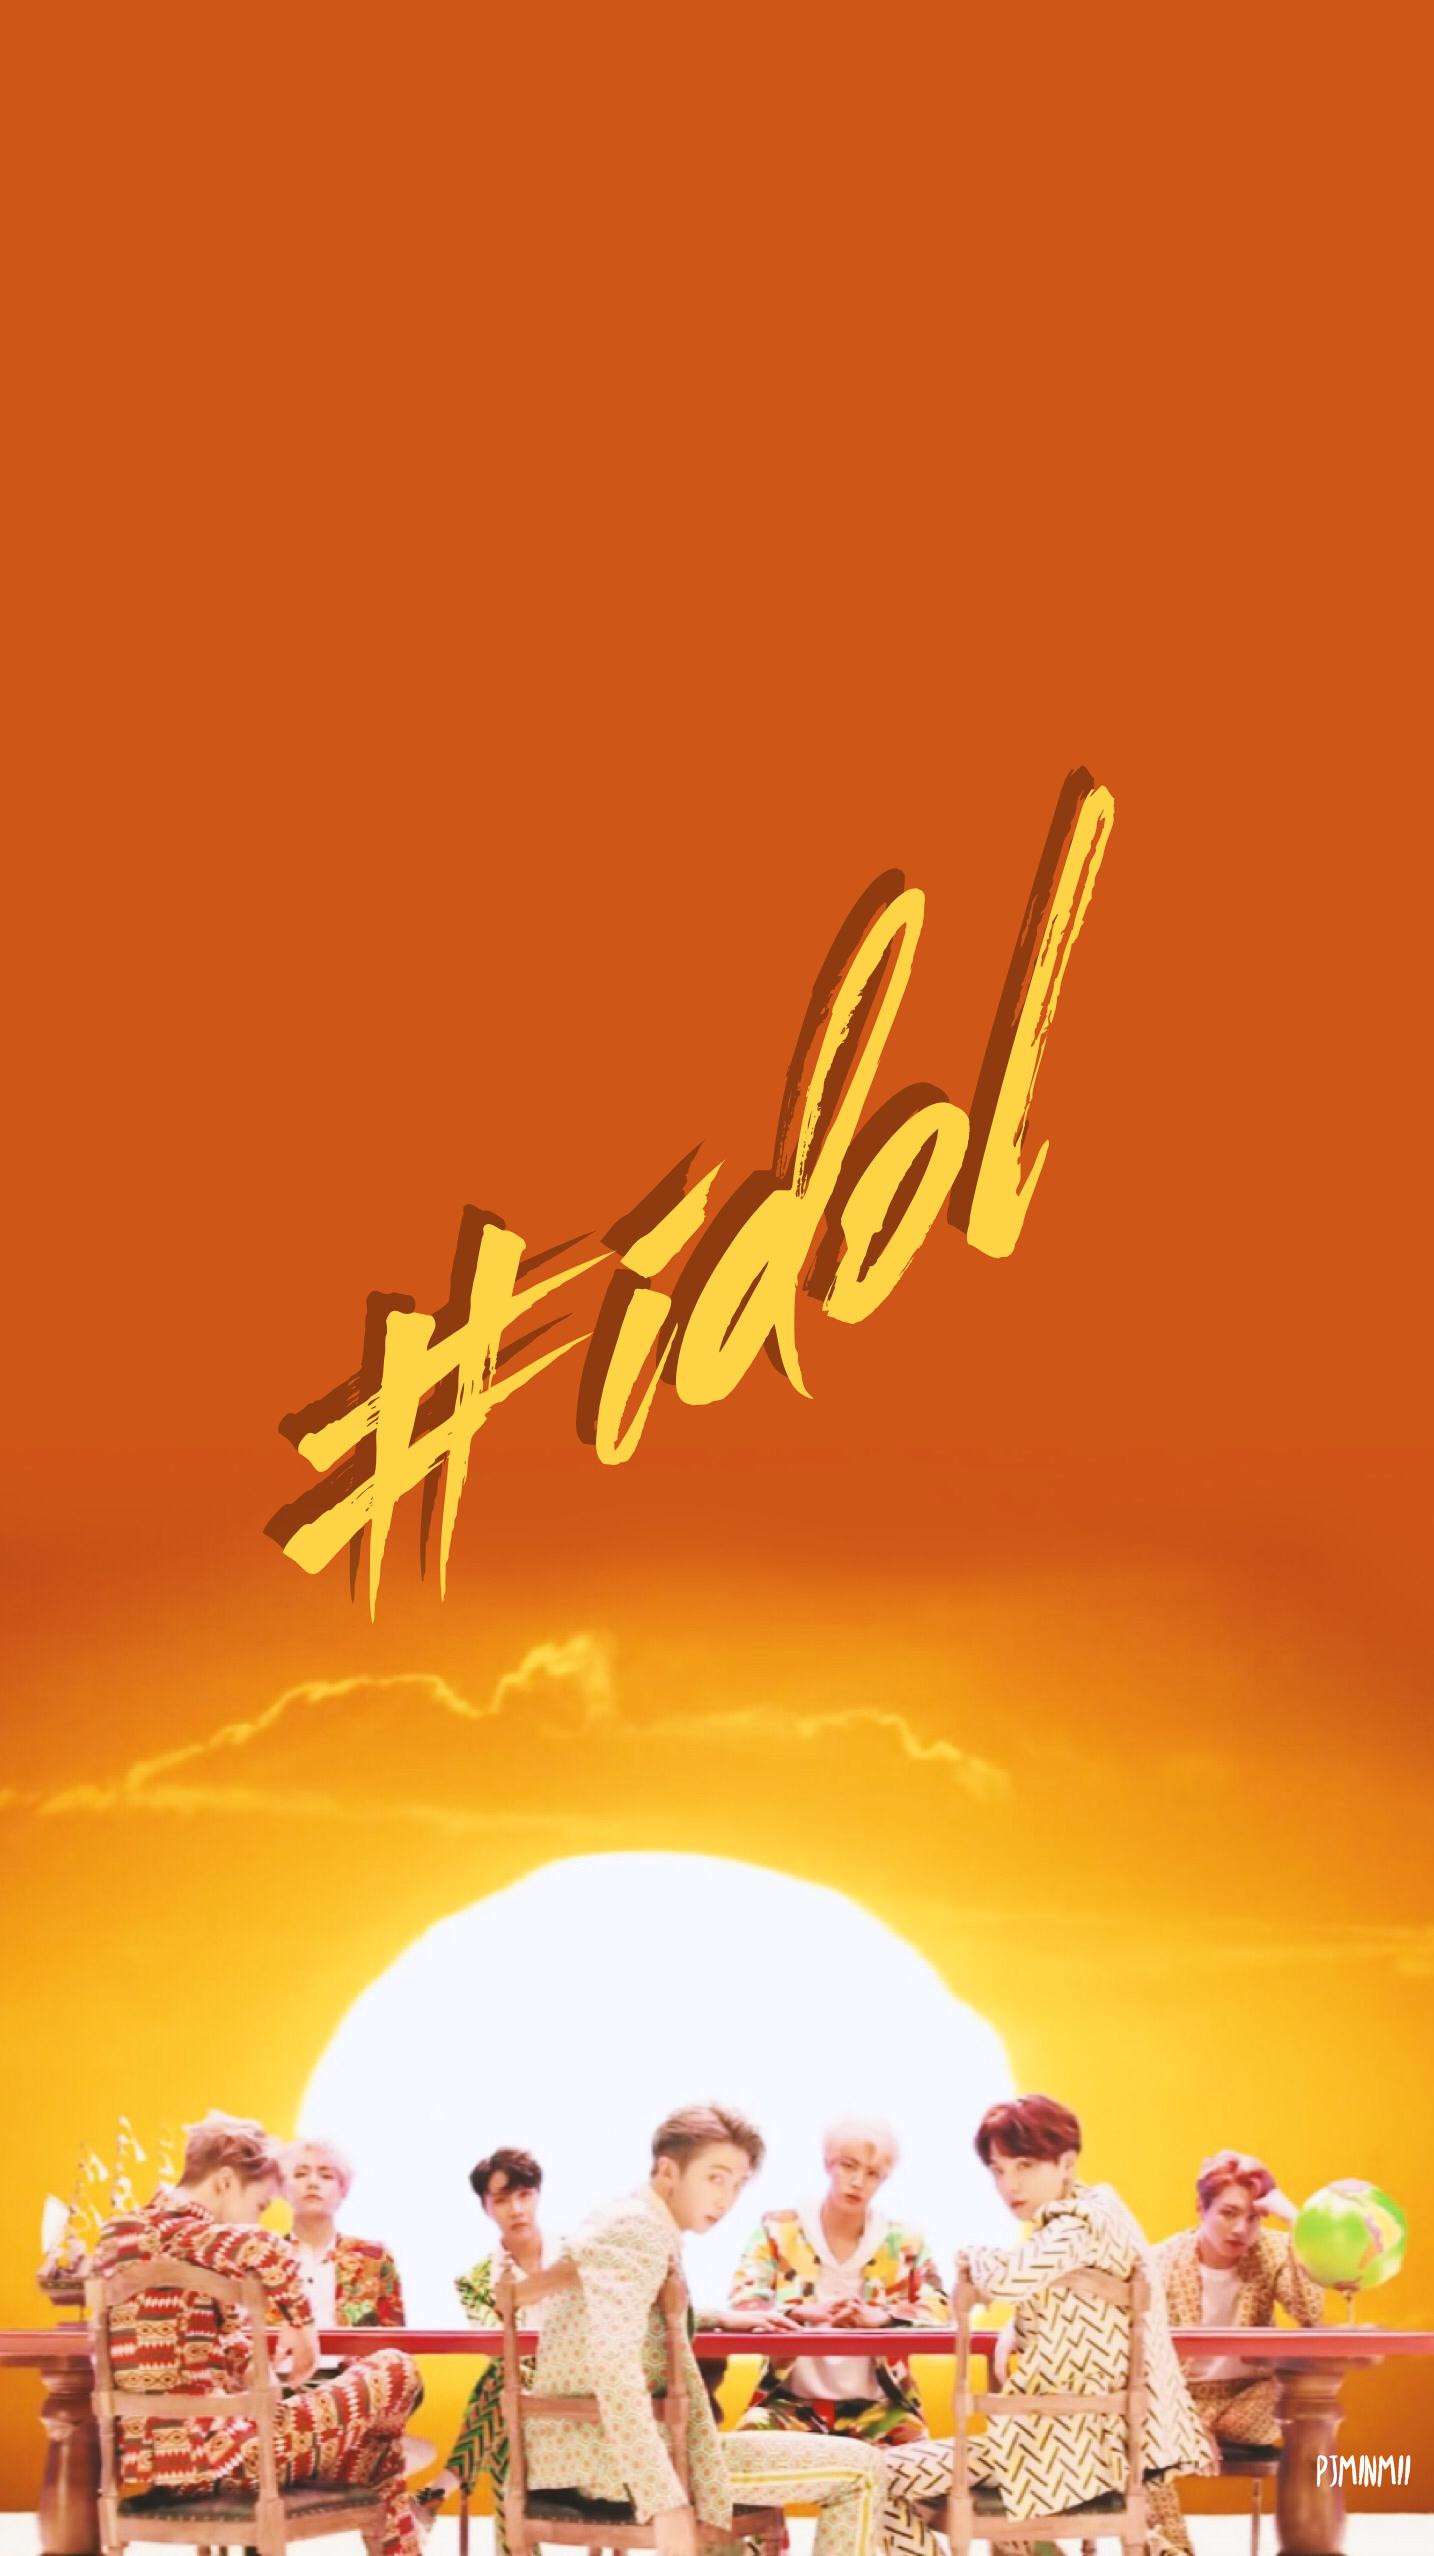 BTS IDOL WALLPAPER BTS BTS Bts wallpaper Bts boys 1434x2556